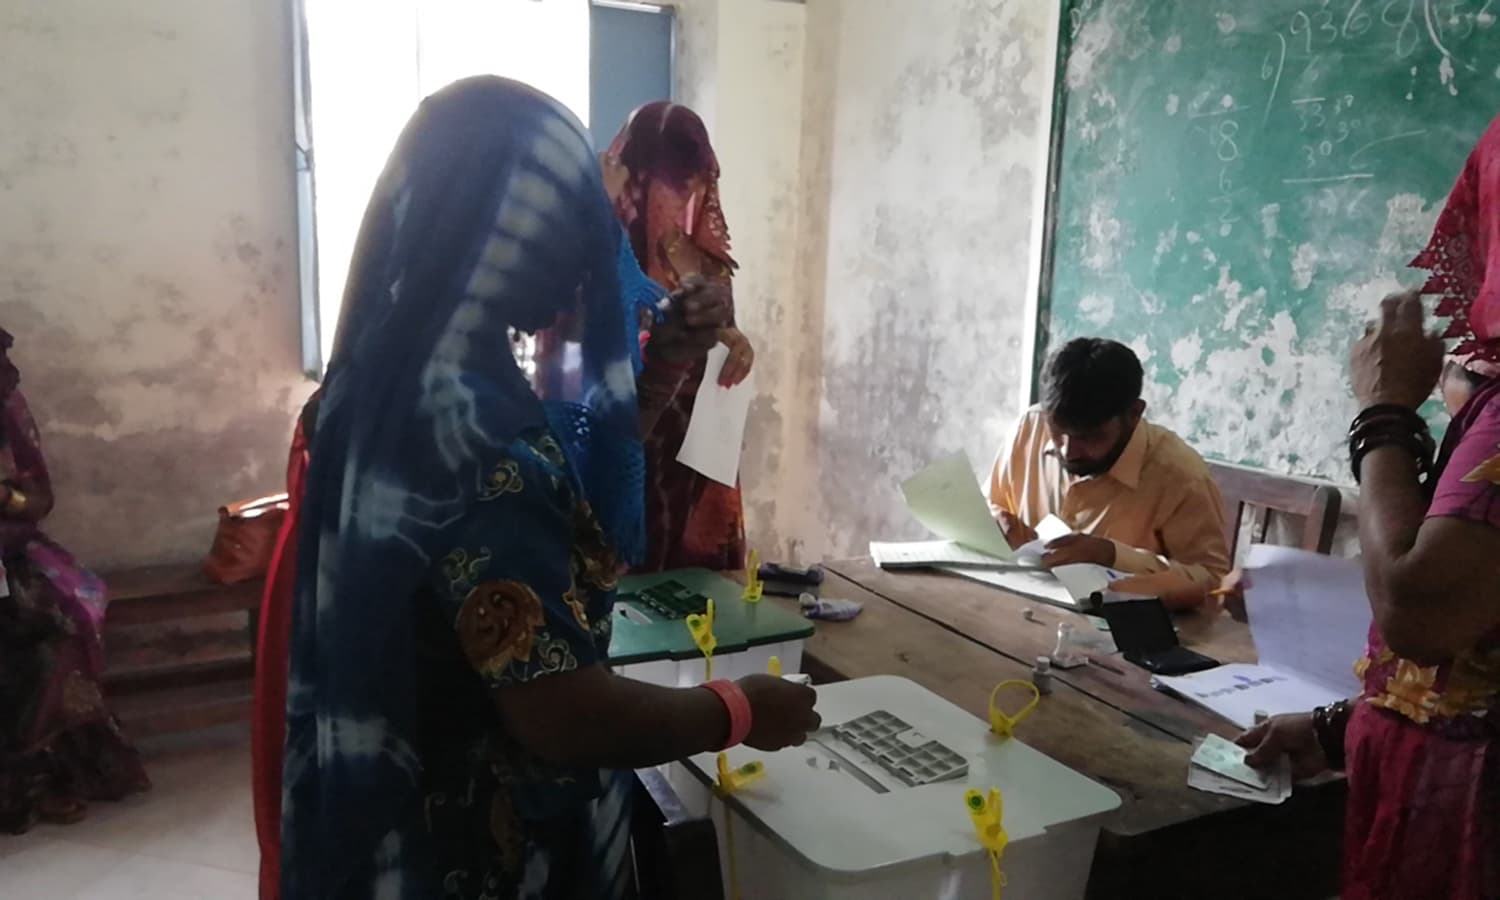 A Thari woman casts her ballot. —Photo provided by author